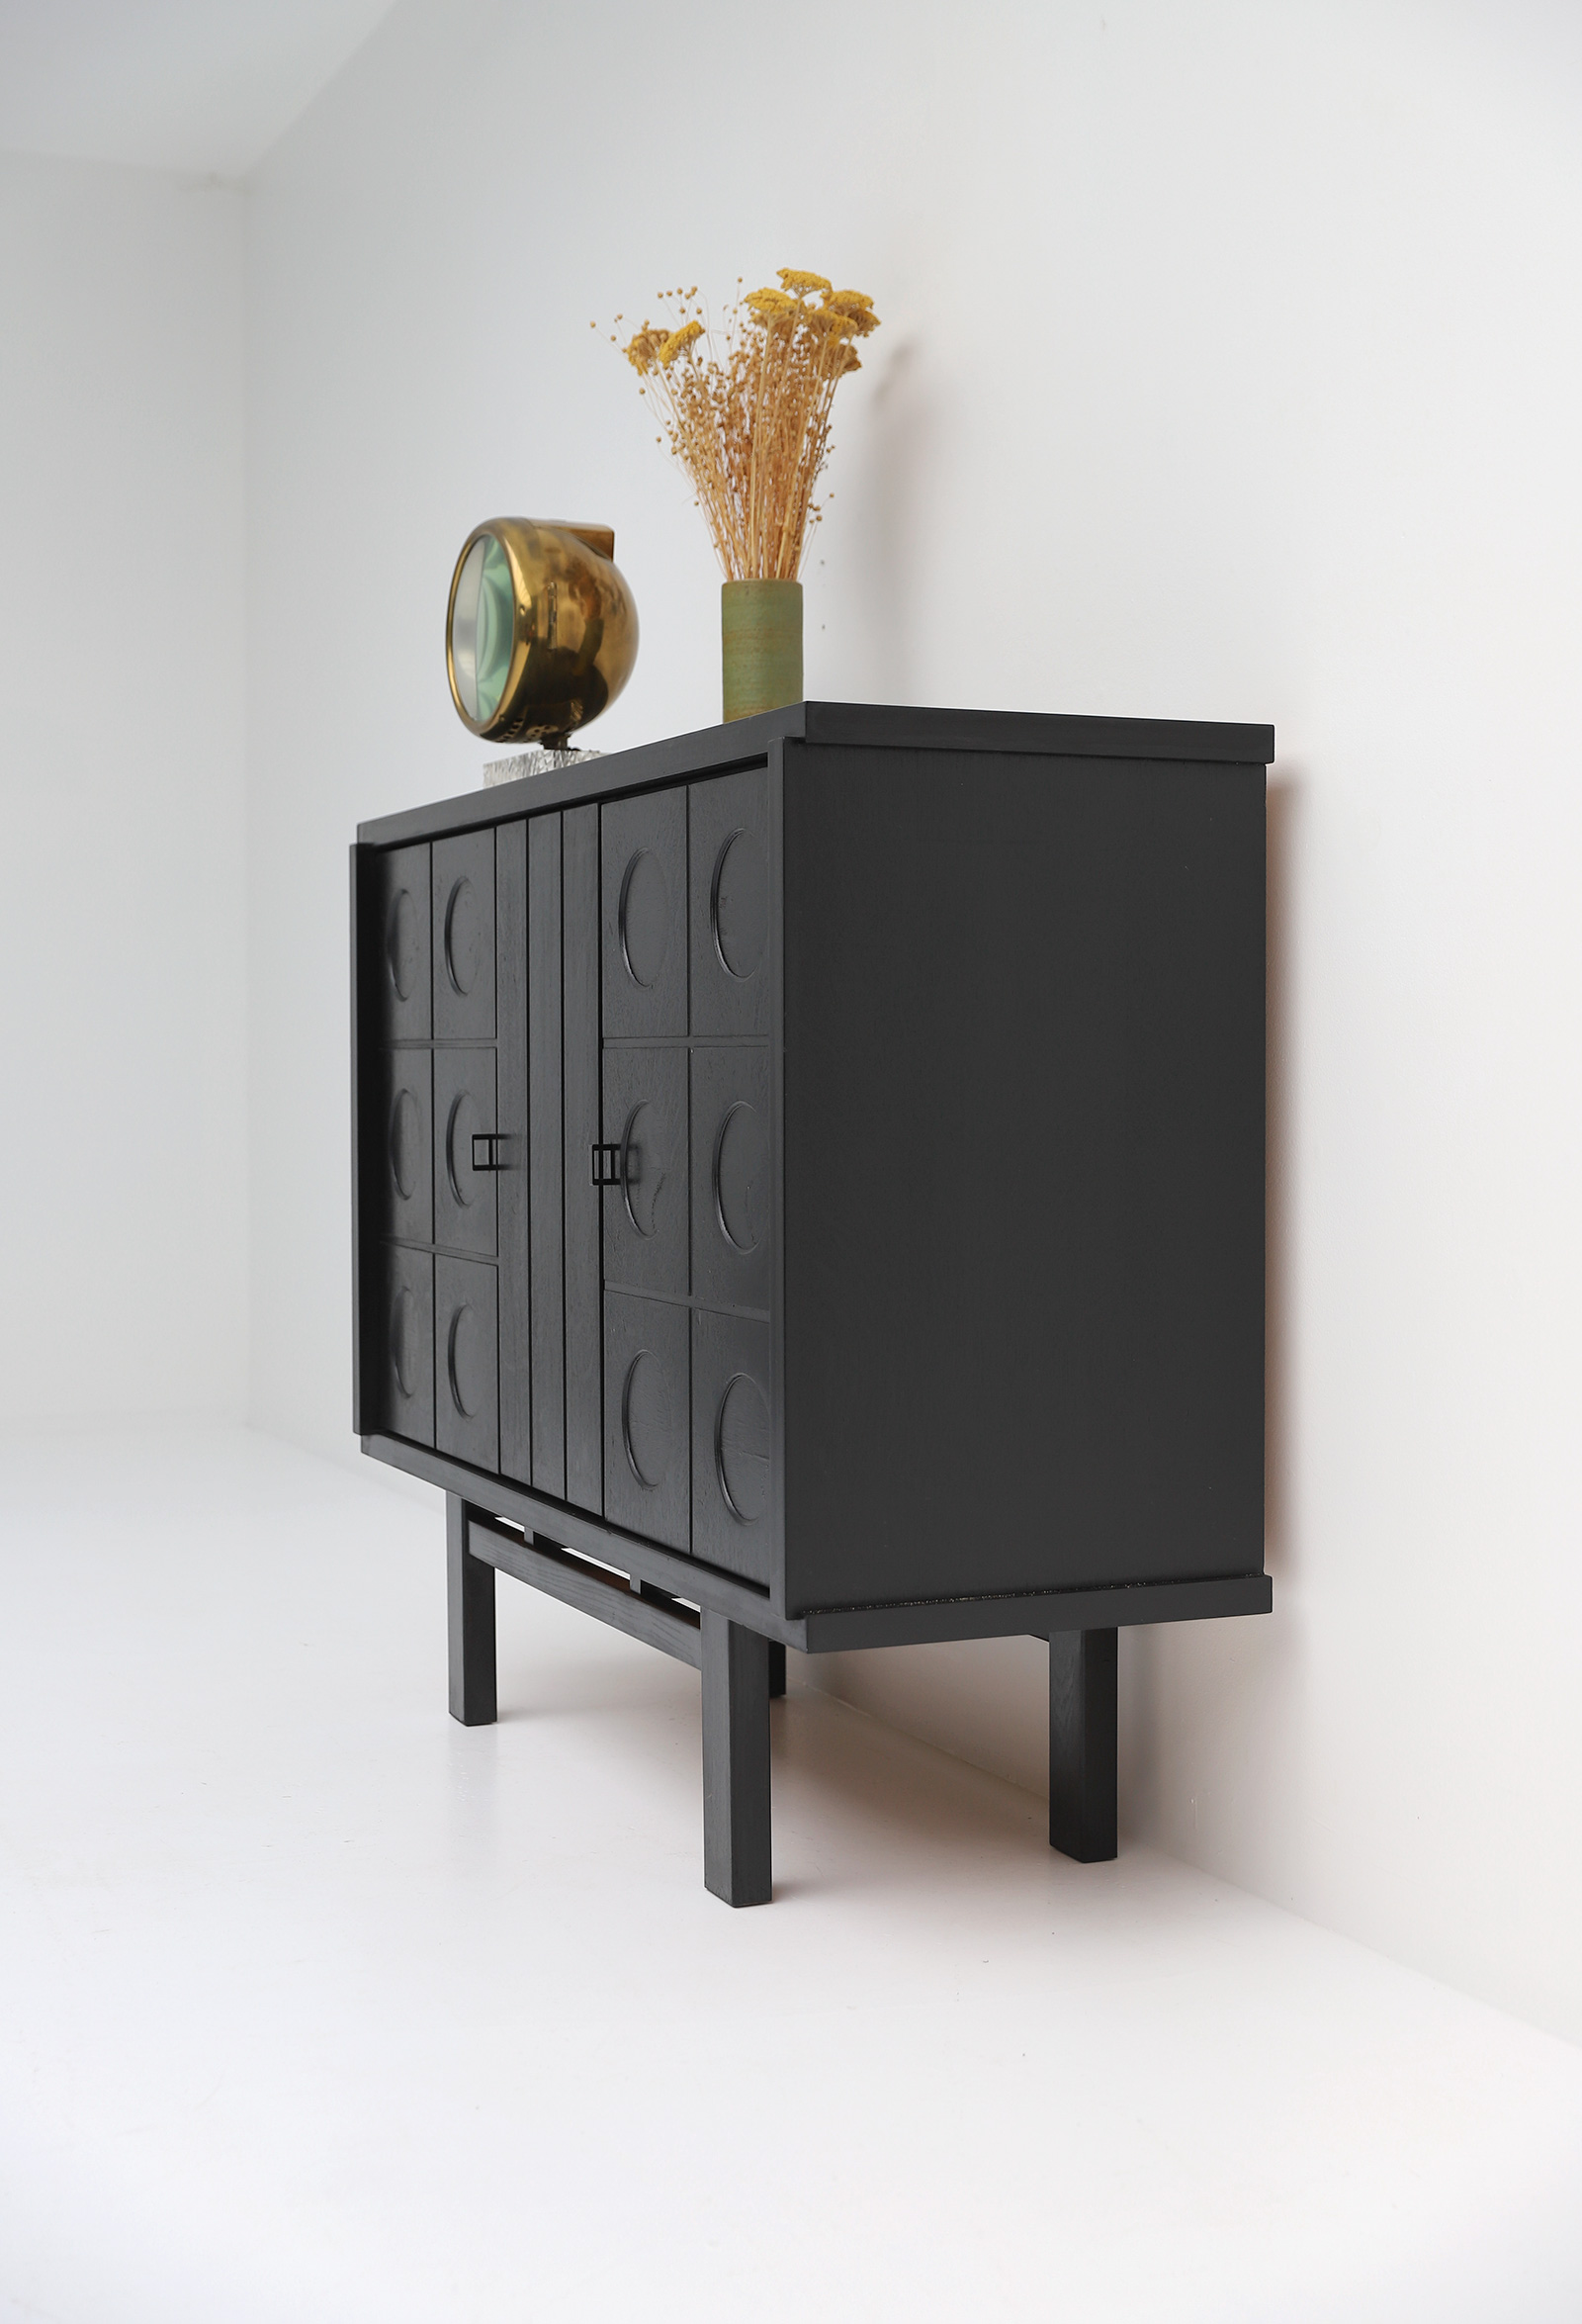 Decorative Black Cabinet with Patterned doors image 8